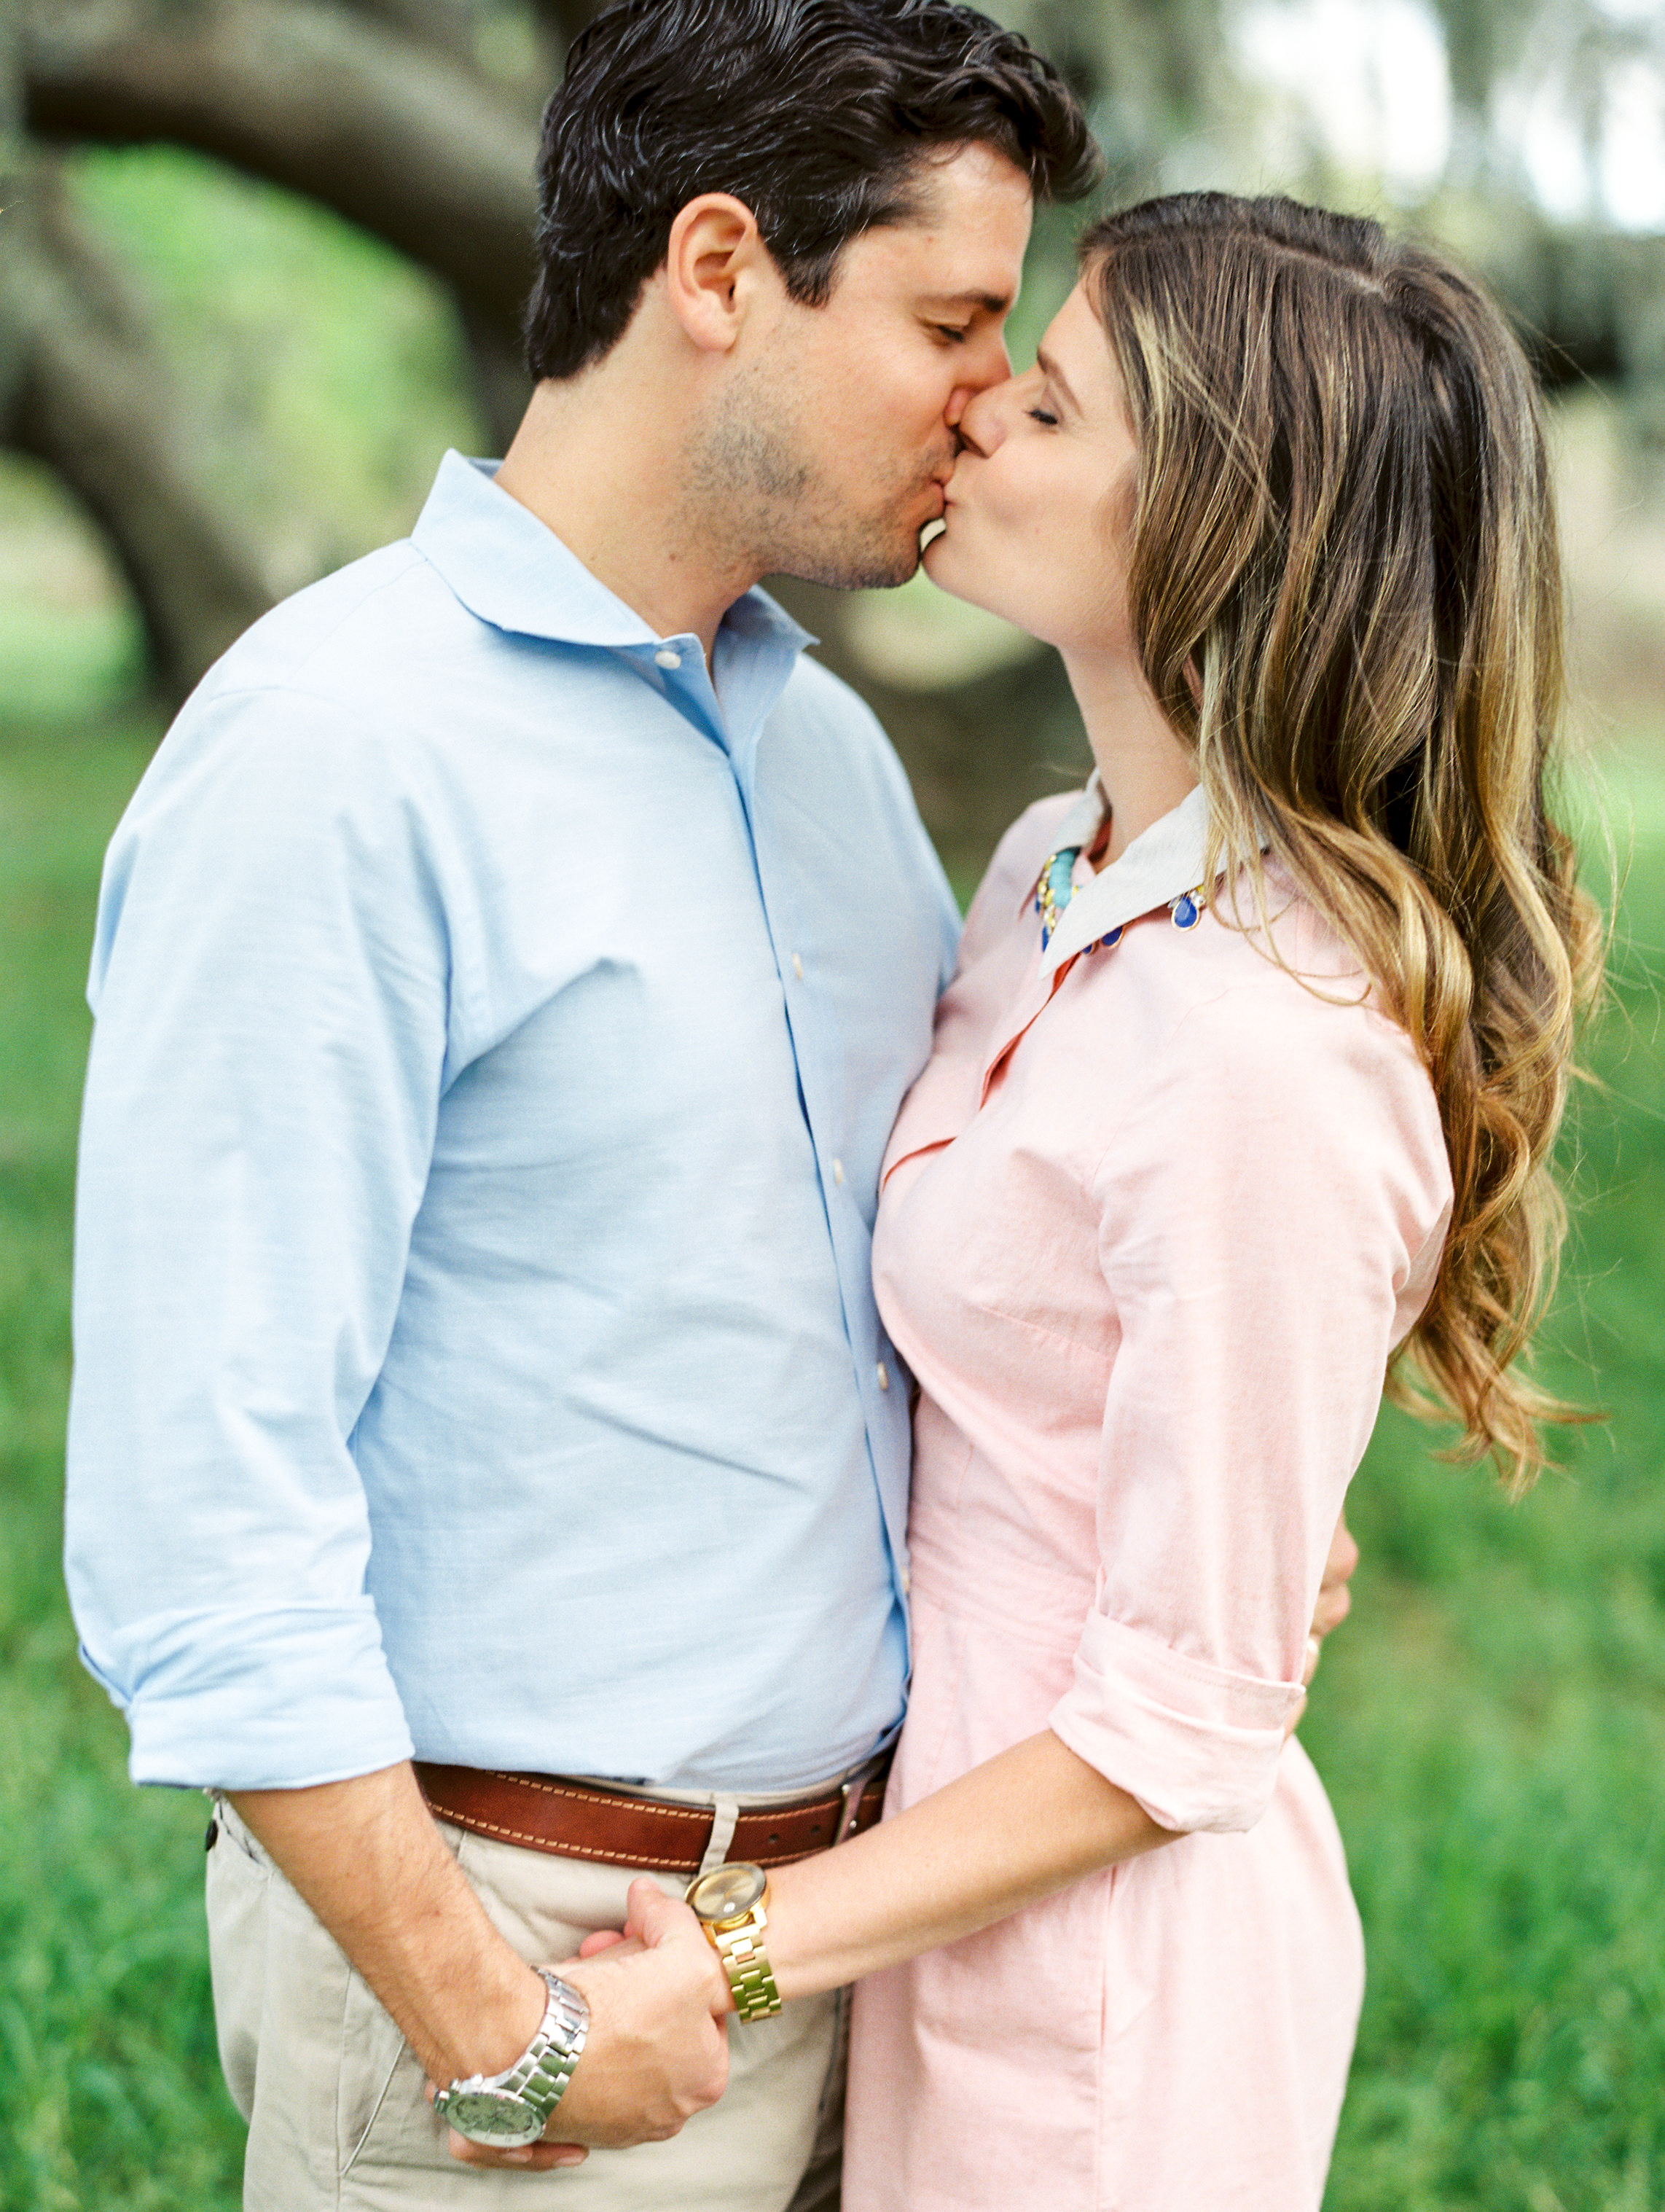 Dana Fernandez Photography Houston Wedding Engagement Film Photographer Destination-5.jpg